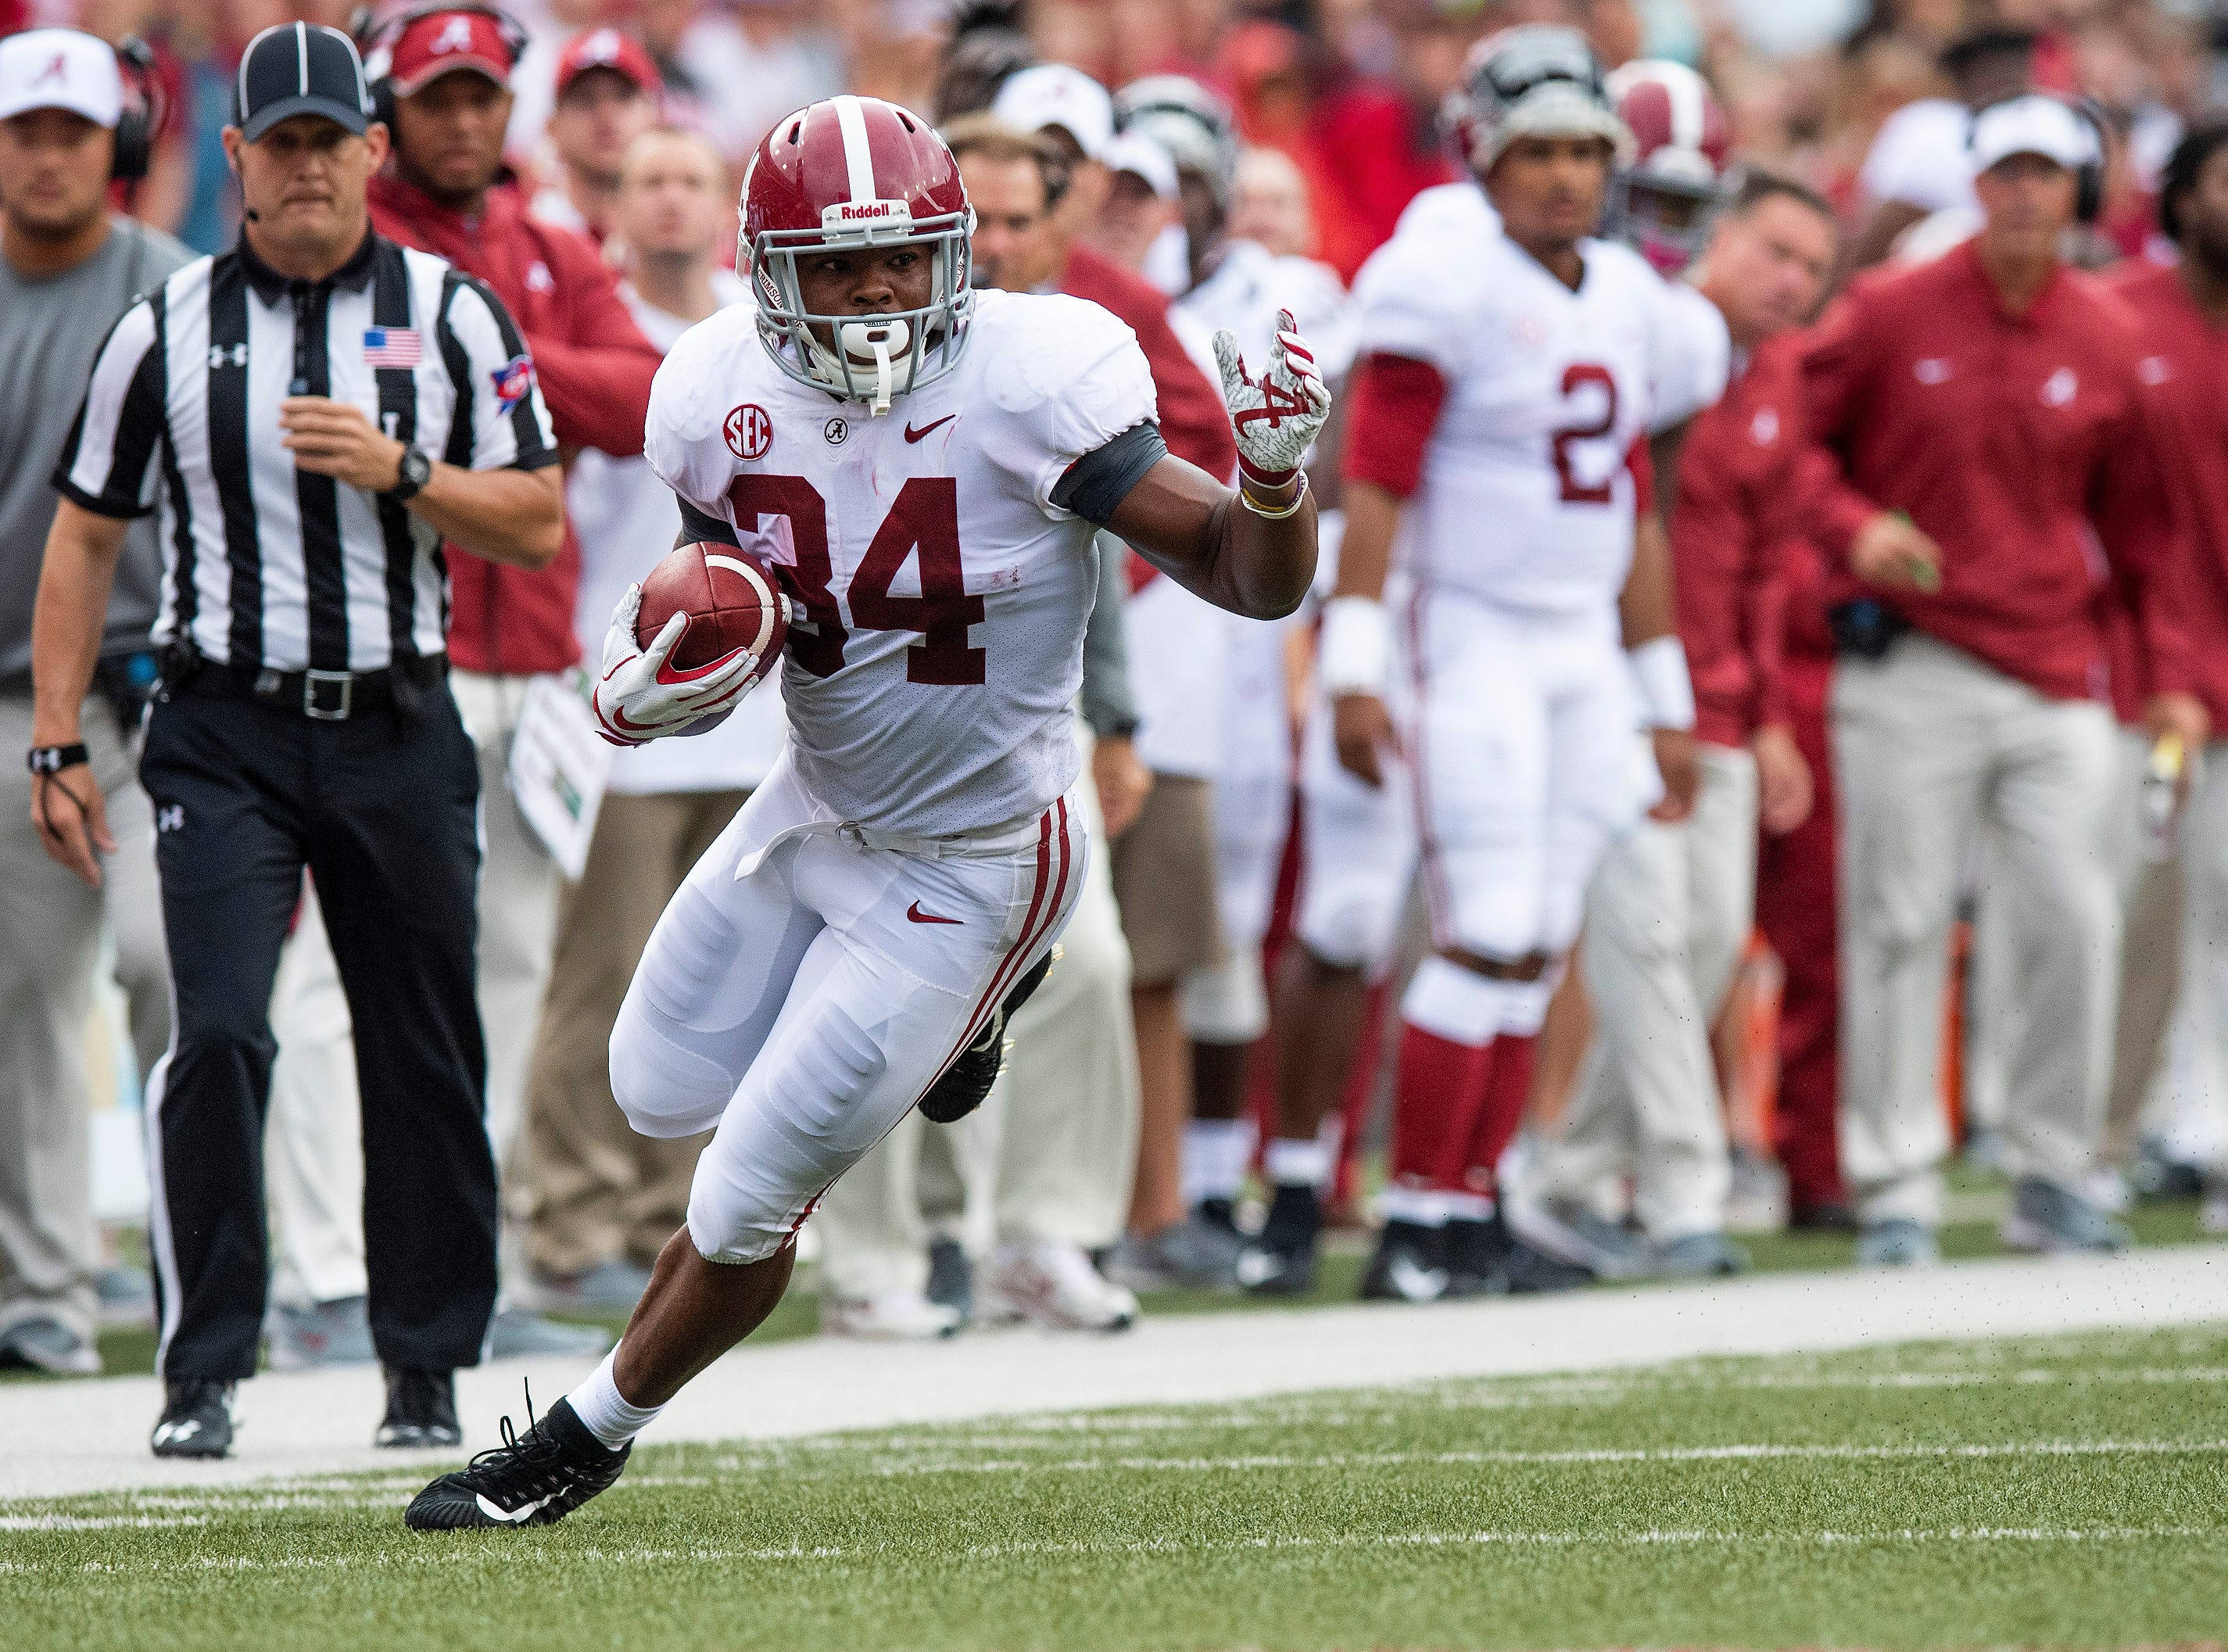 Alabama running back Damien Harris (34) carries the ball against Arkansas during first half action in Fayetteville, Ark., on Saturday October 6, 2018.